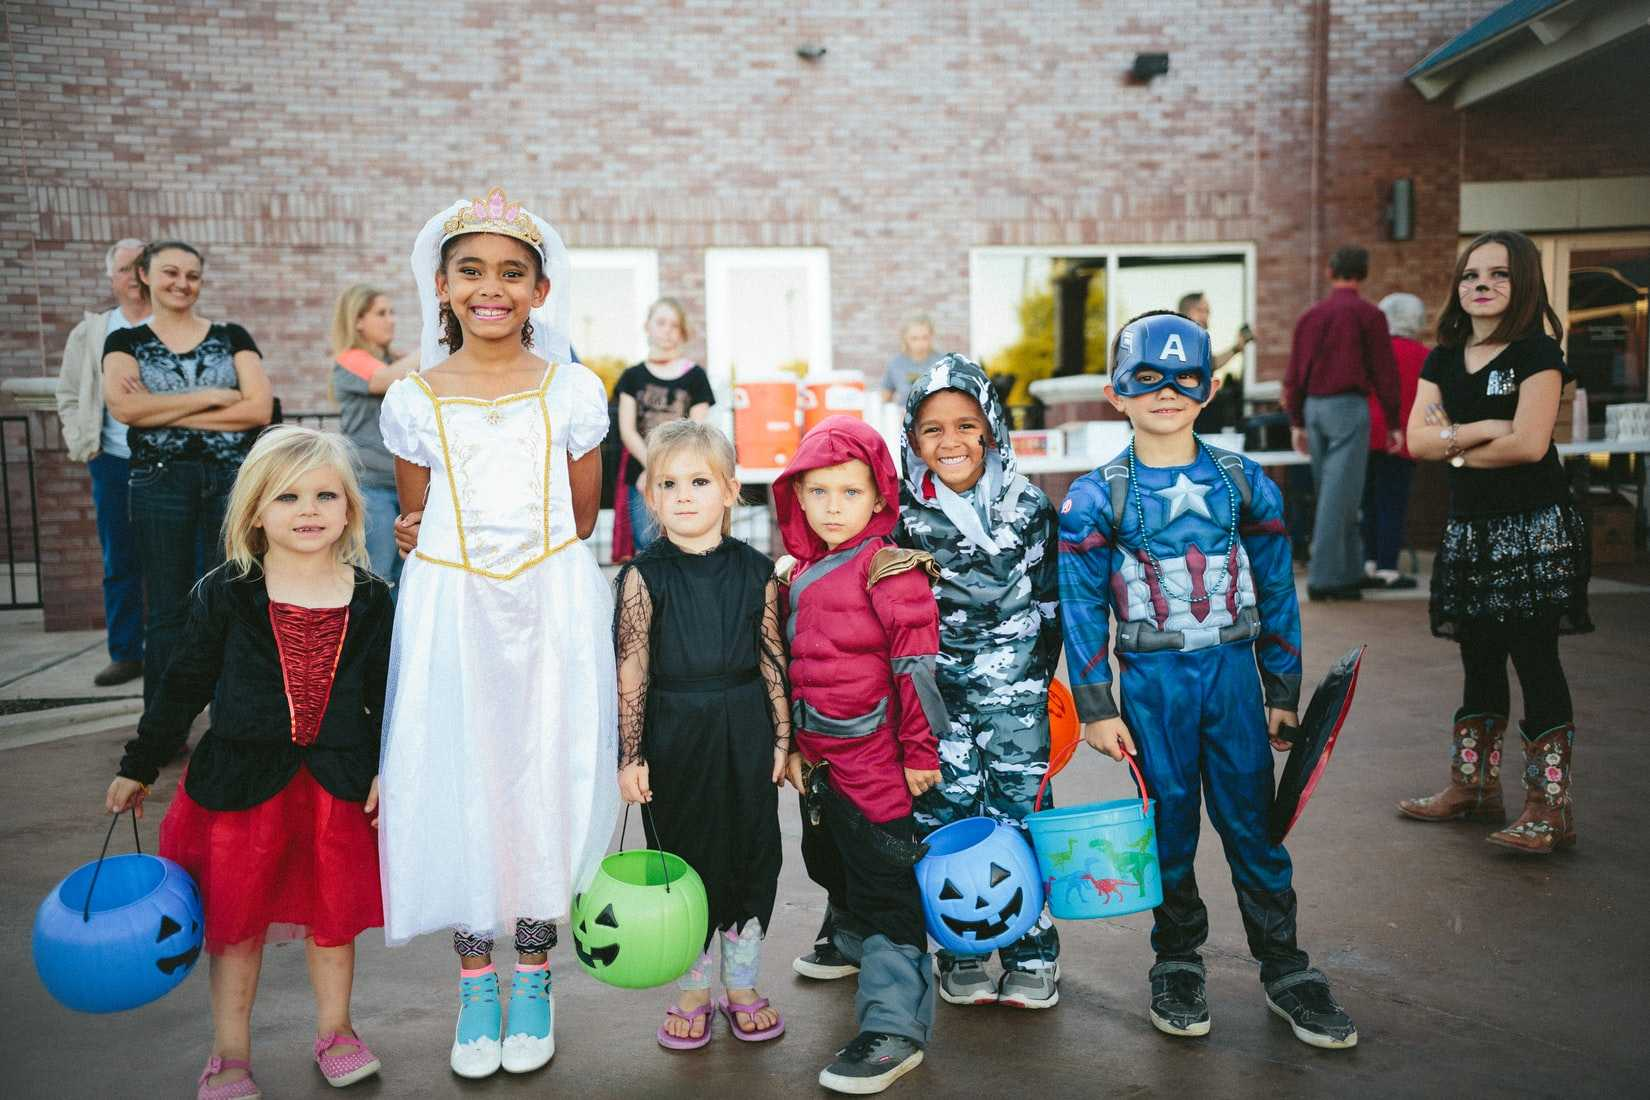 Kids Dressed Up for Halloween | Goodwill Car Donations